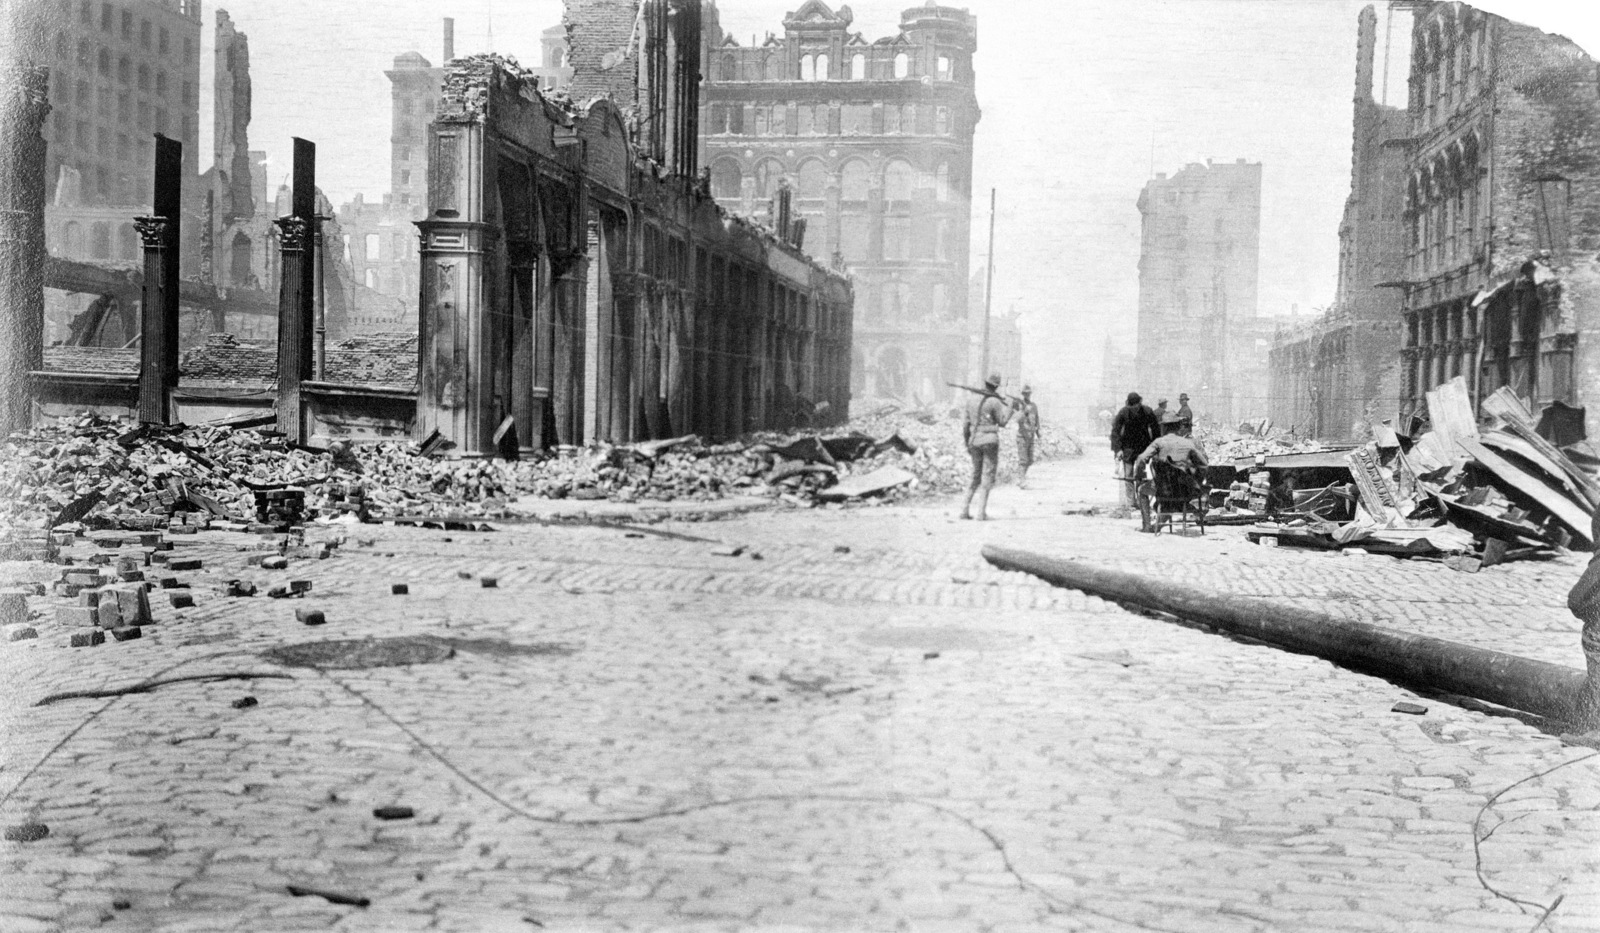 Soldiers from the Presidio patrol this area, looking north from the junction of Sansome and Bush Streets. The area is known as the insurance district of San Francisco. On April 18, 1906 at 5:15 AM a quake of 8.25 on the Richter scale hit San Francisco. Greater destruction came from the fires afterwards. The city burned for three days. The combination destroyed 490 city blocks and 25,000 buildings, leaving 250,000 homeless and killing between 450 and 700. Estimated damages, over $350 million